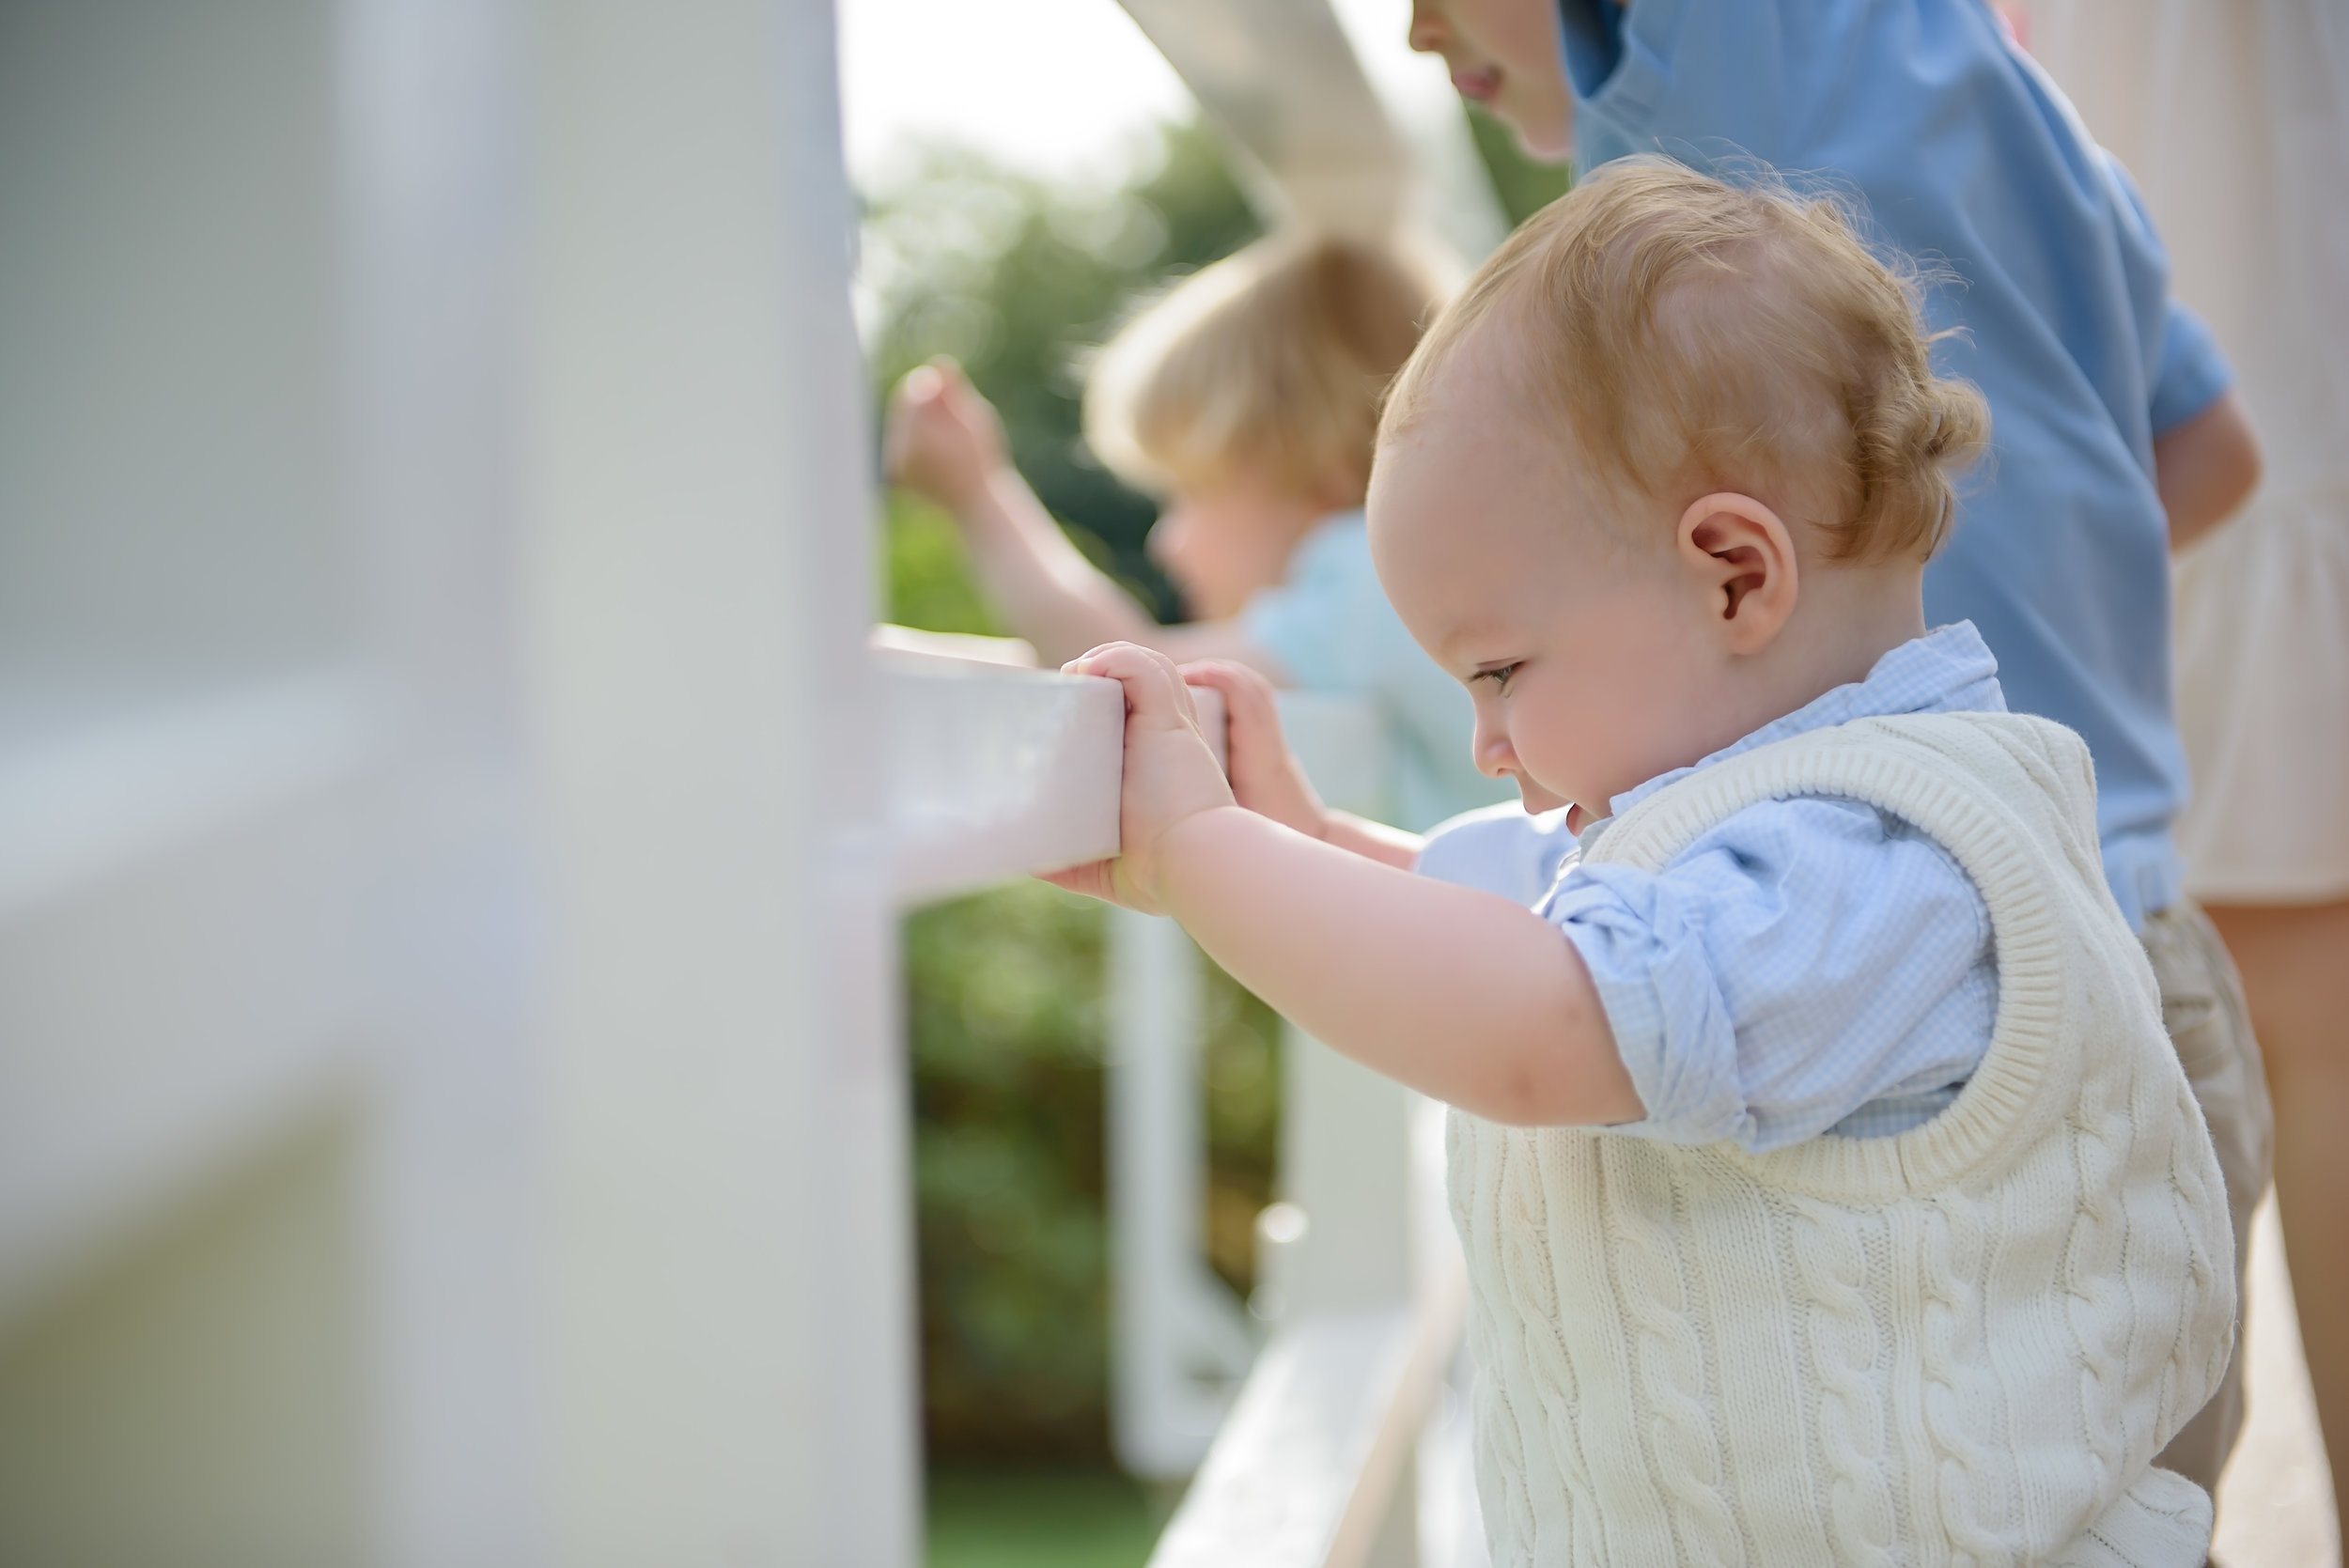 Family photographer at the Hurlingham club, West London